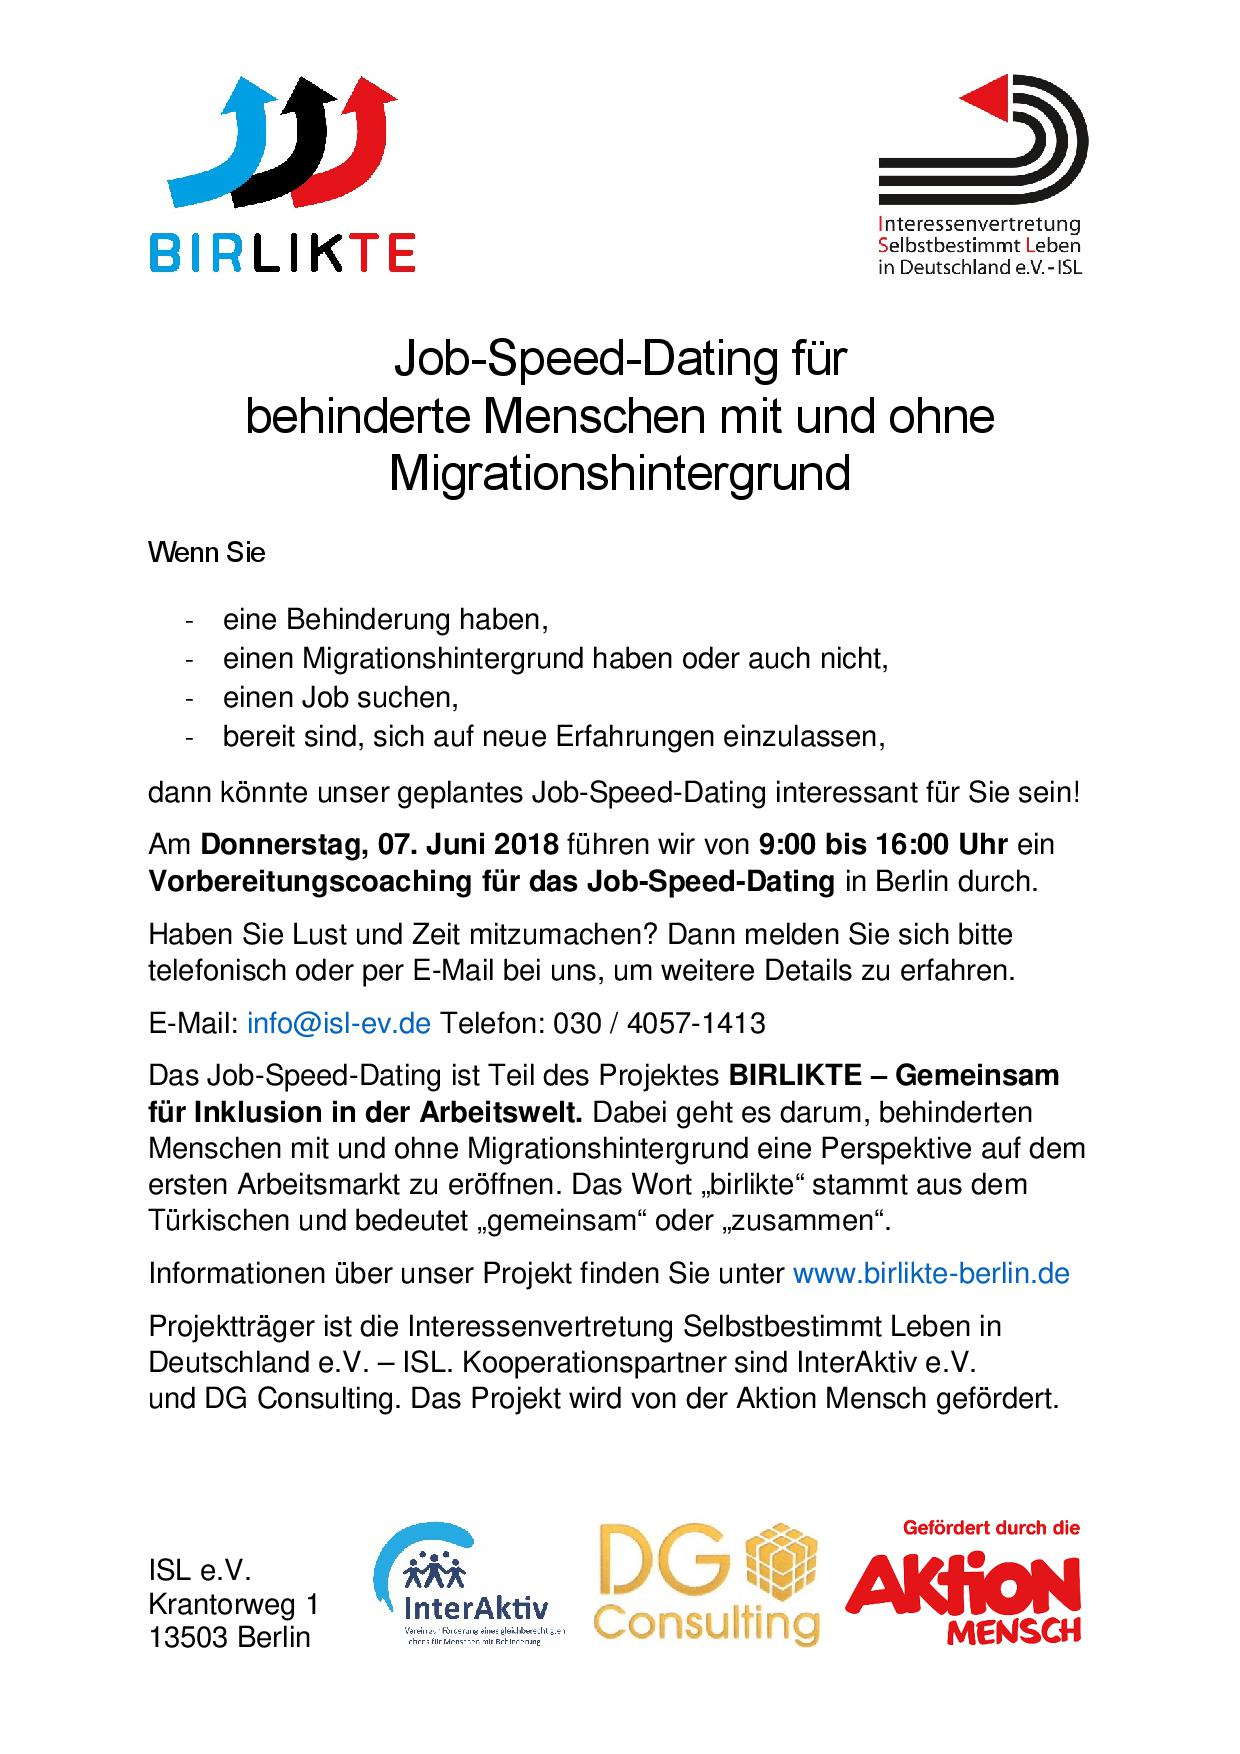 Einladungsflyer Coaching für das Job-Speed-Dating